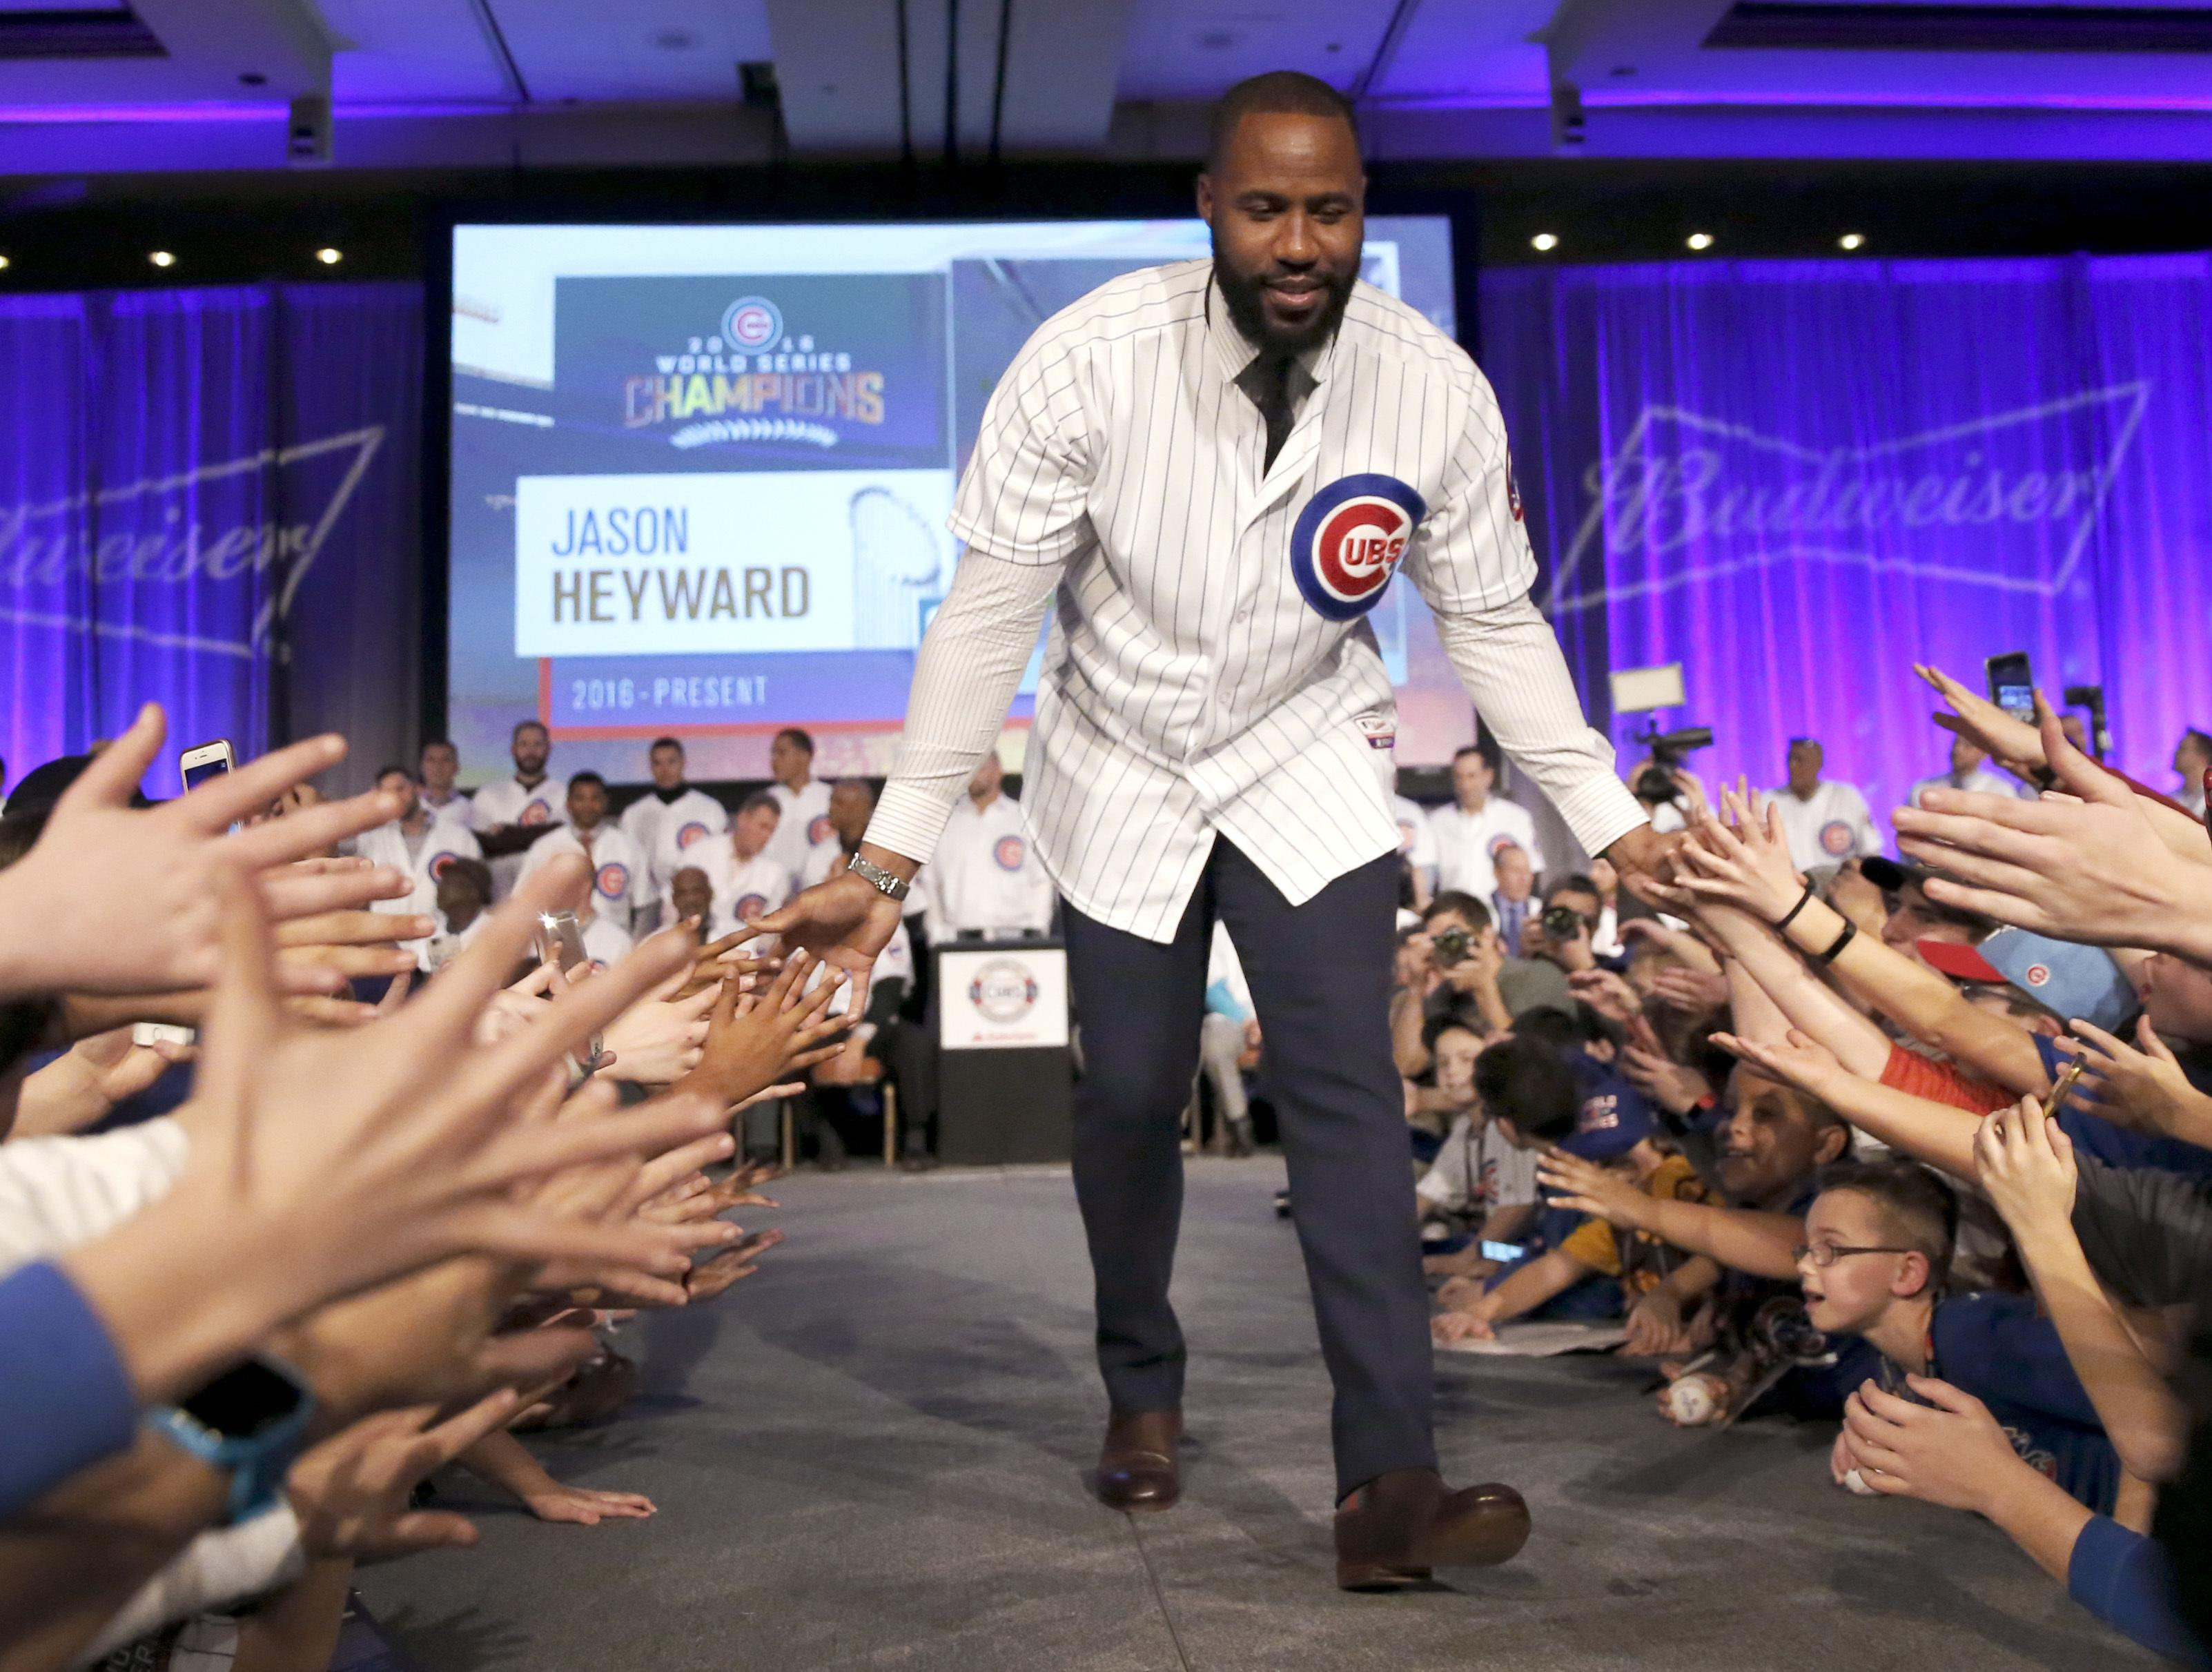 Cubs_convention_baseball_11842